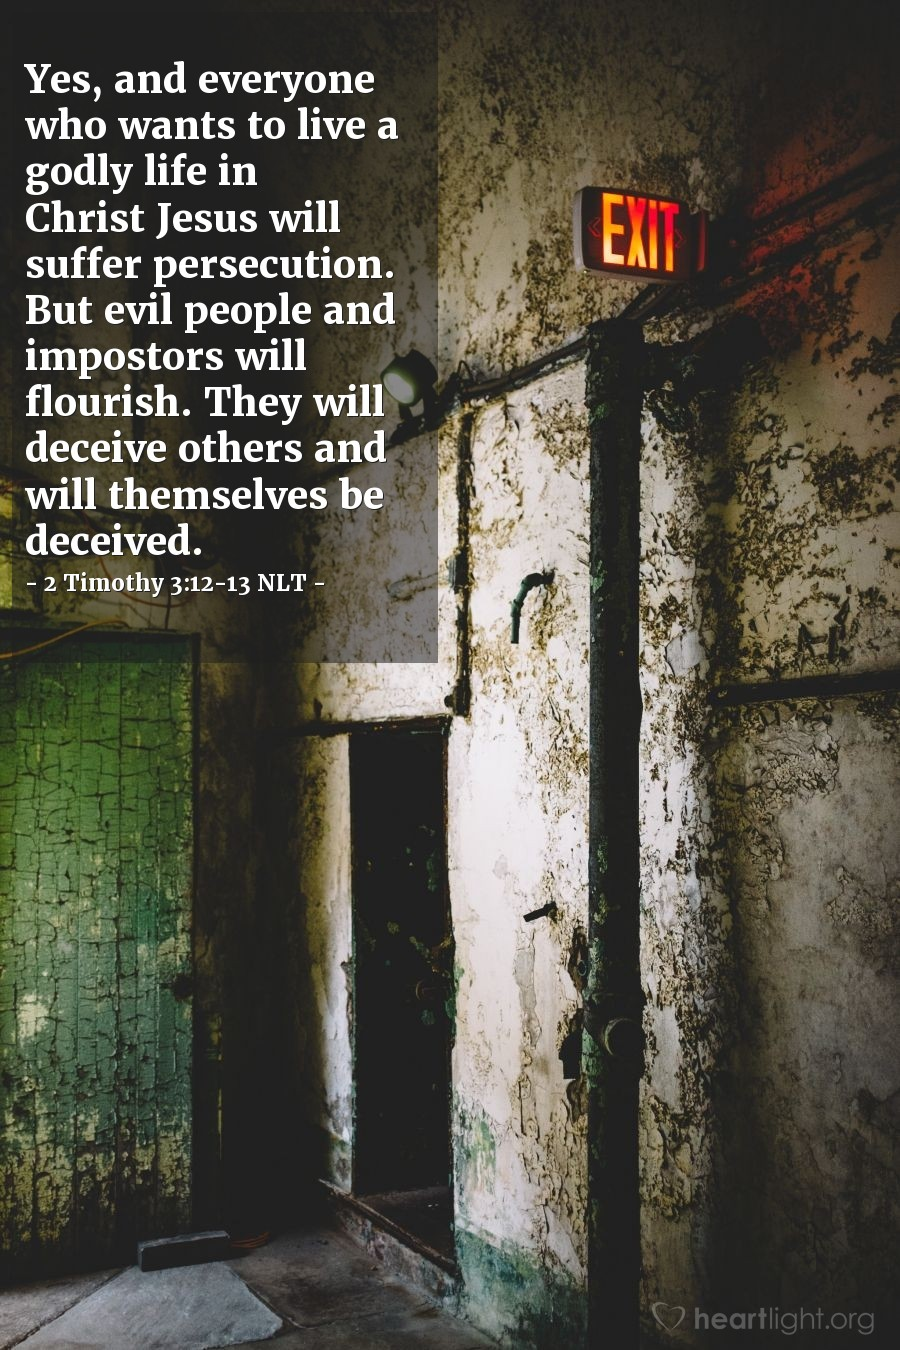 Illustration of 2 Timothy 3:12-13 NLT — Yes, and everyone who wants to live a godly life in Christ Jesus will suffer persecution. But evil people and impostors will flourish. They will deceive others and will themselves be deceived.